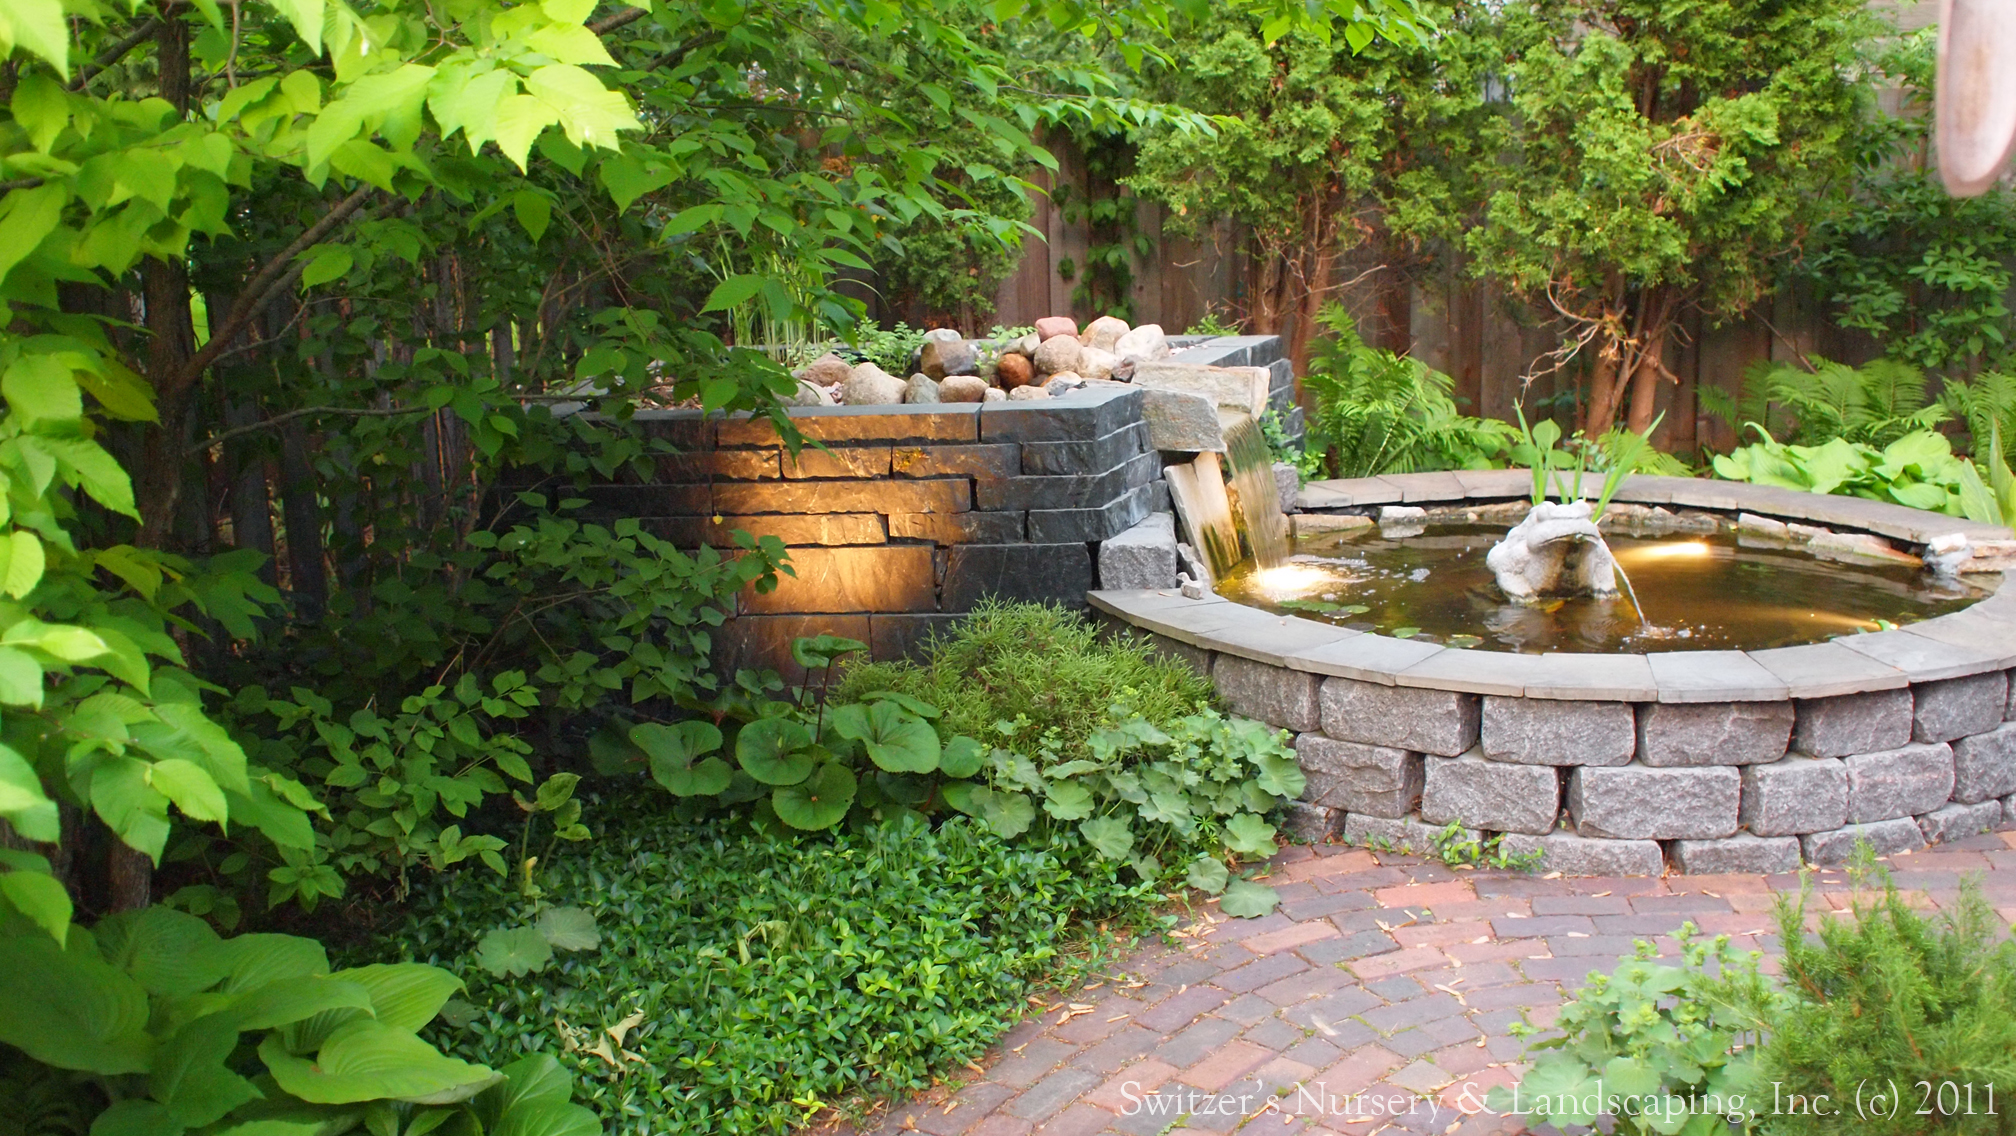 Minnesota landscape design inspired by bali natural for Natural landscape design